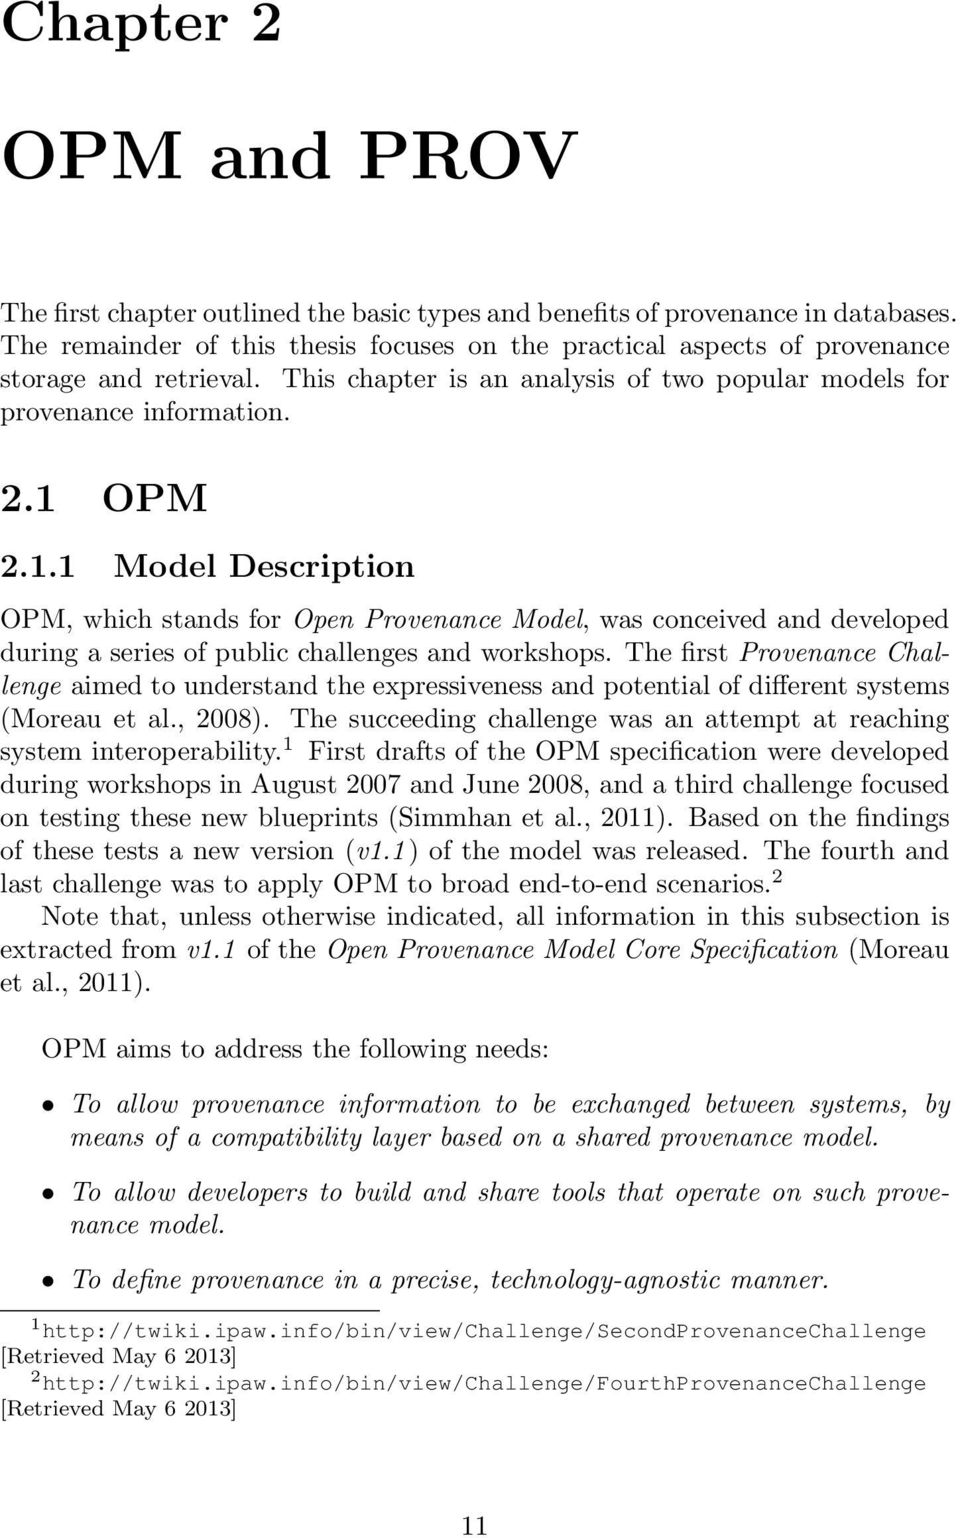 OPM 2.1.1 Model Description OPM, which stands for Open Provenance Model, was conceived and developed during a series of public challenges and workshops.